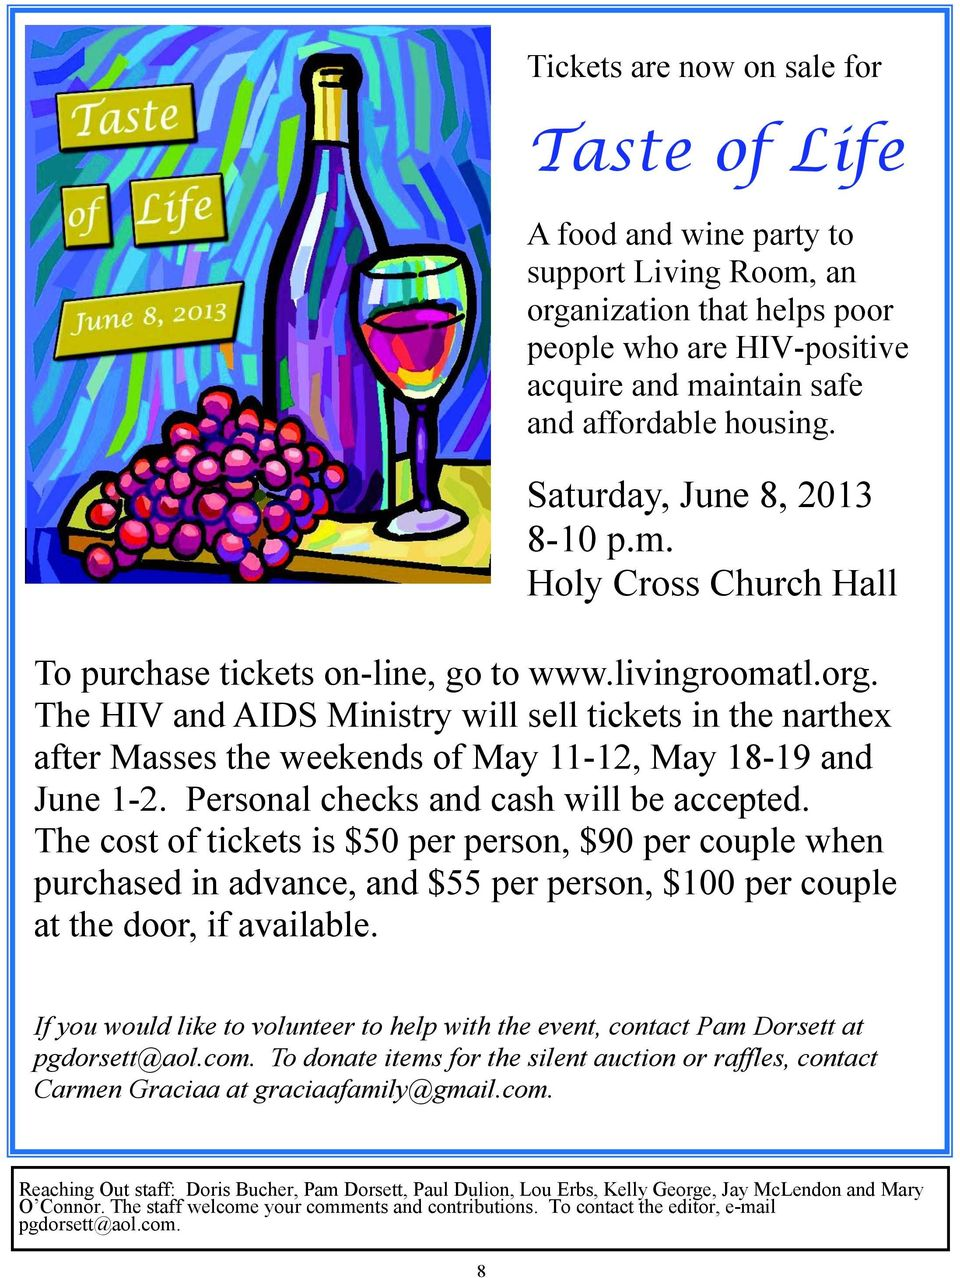 The HIV and AIDS Ministry will sell tickets in the narthex after Masses the weekends of May 11-12, May 18-19 and June 1-2. Personal checks and cash will be accepted.